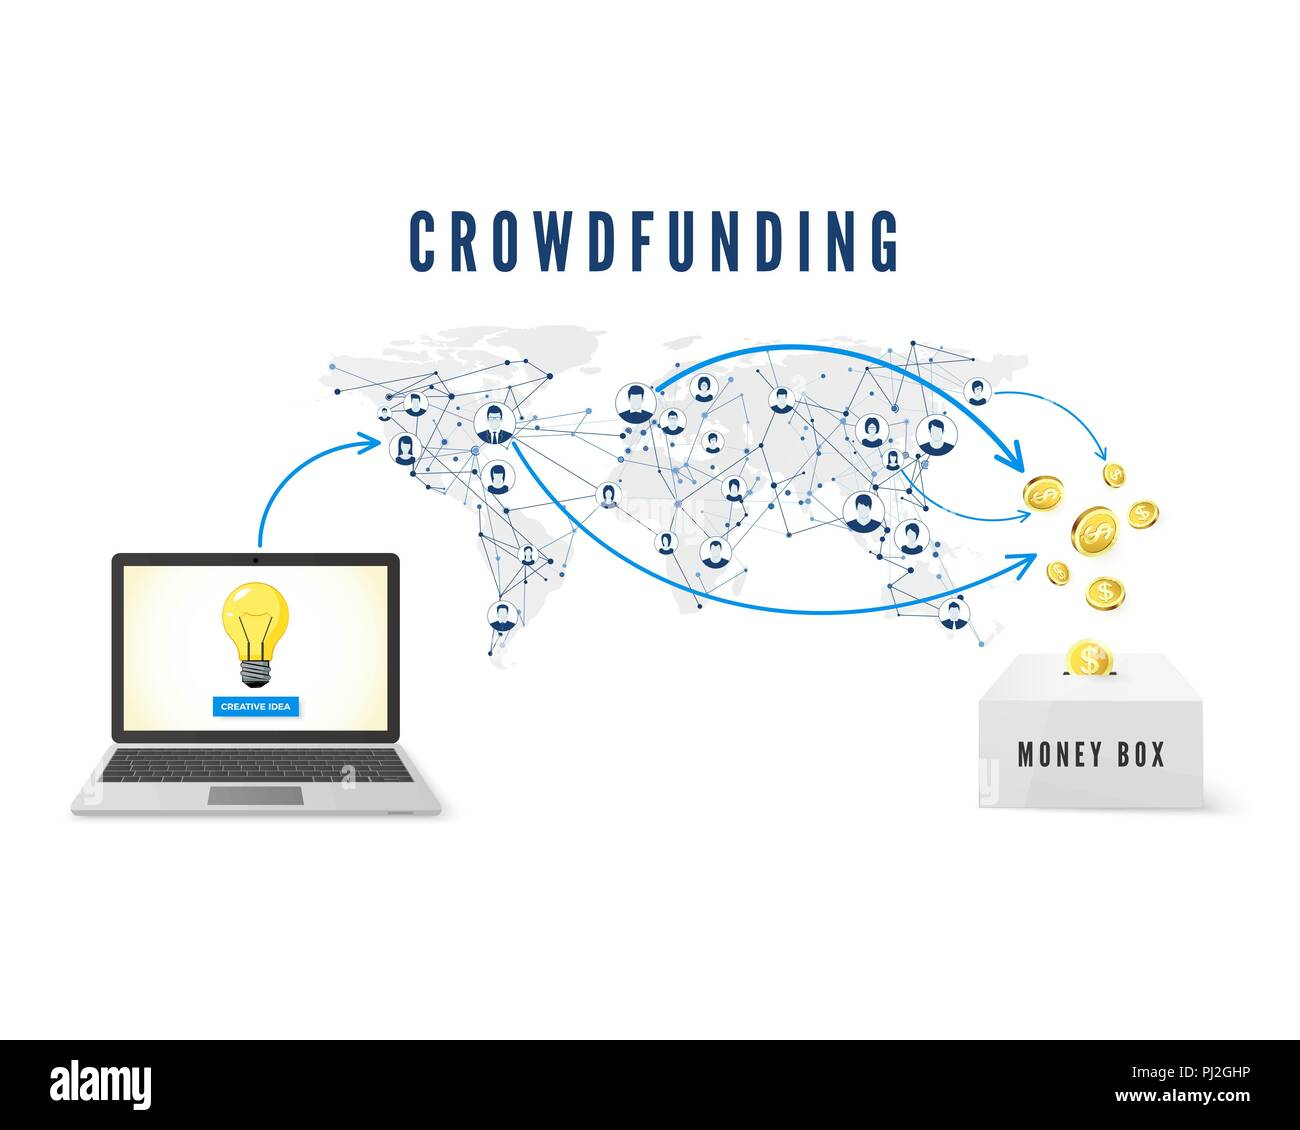 Crowdfunding concept. Start up idea launch. People from global network donating money for Business Idea and help develop project. vector illustration - Stock Image